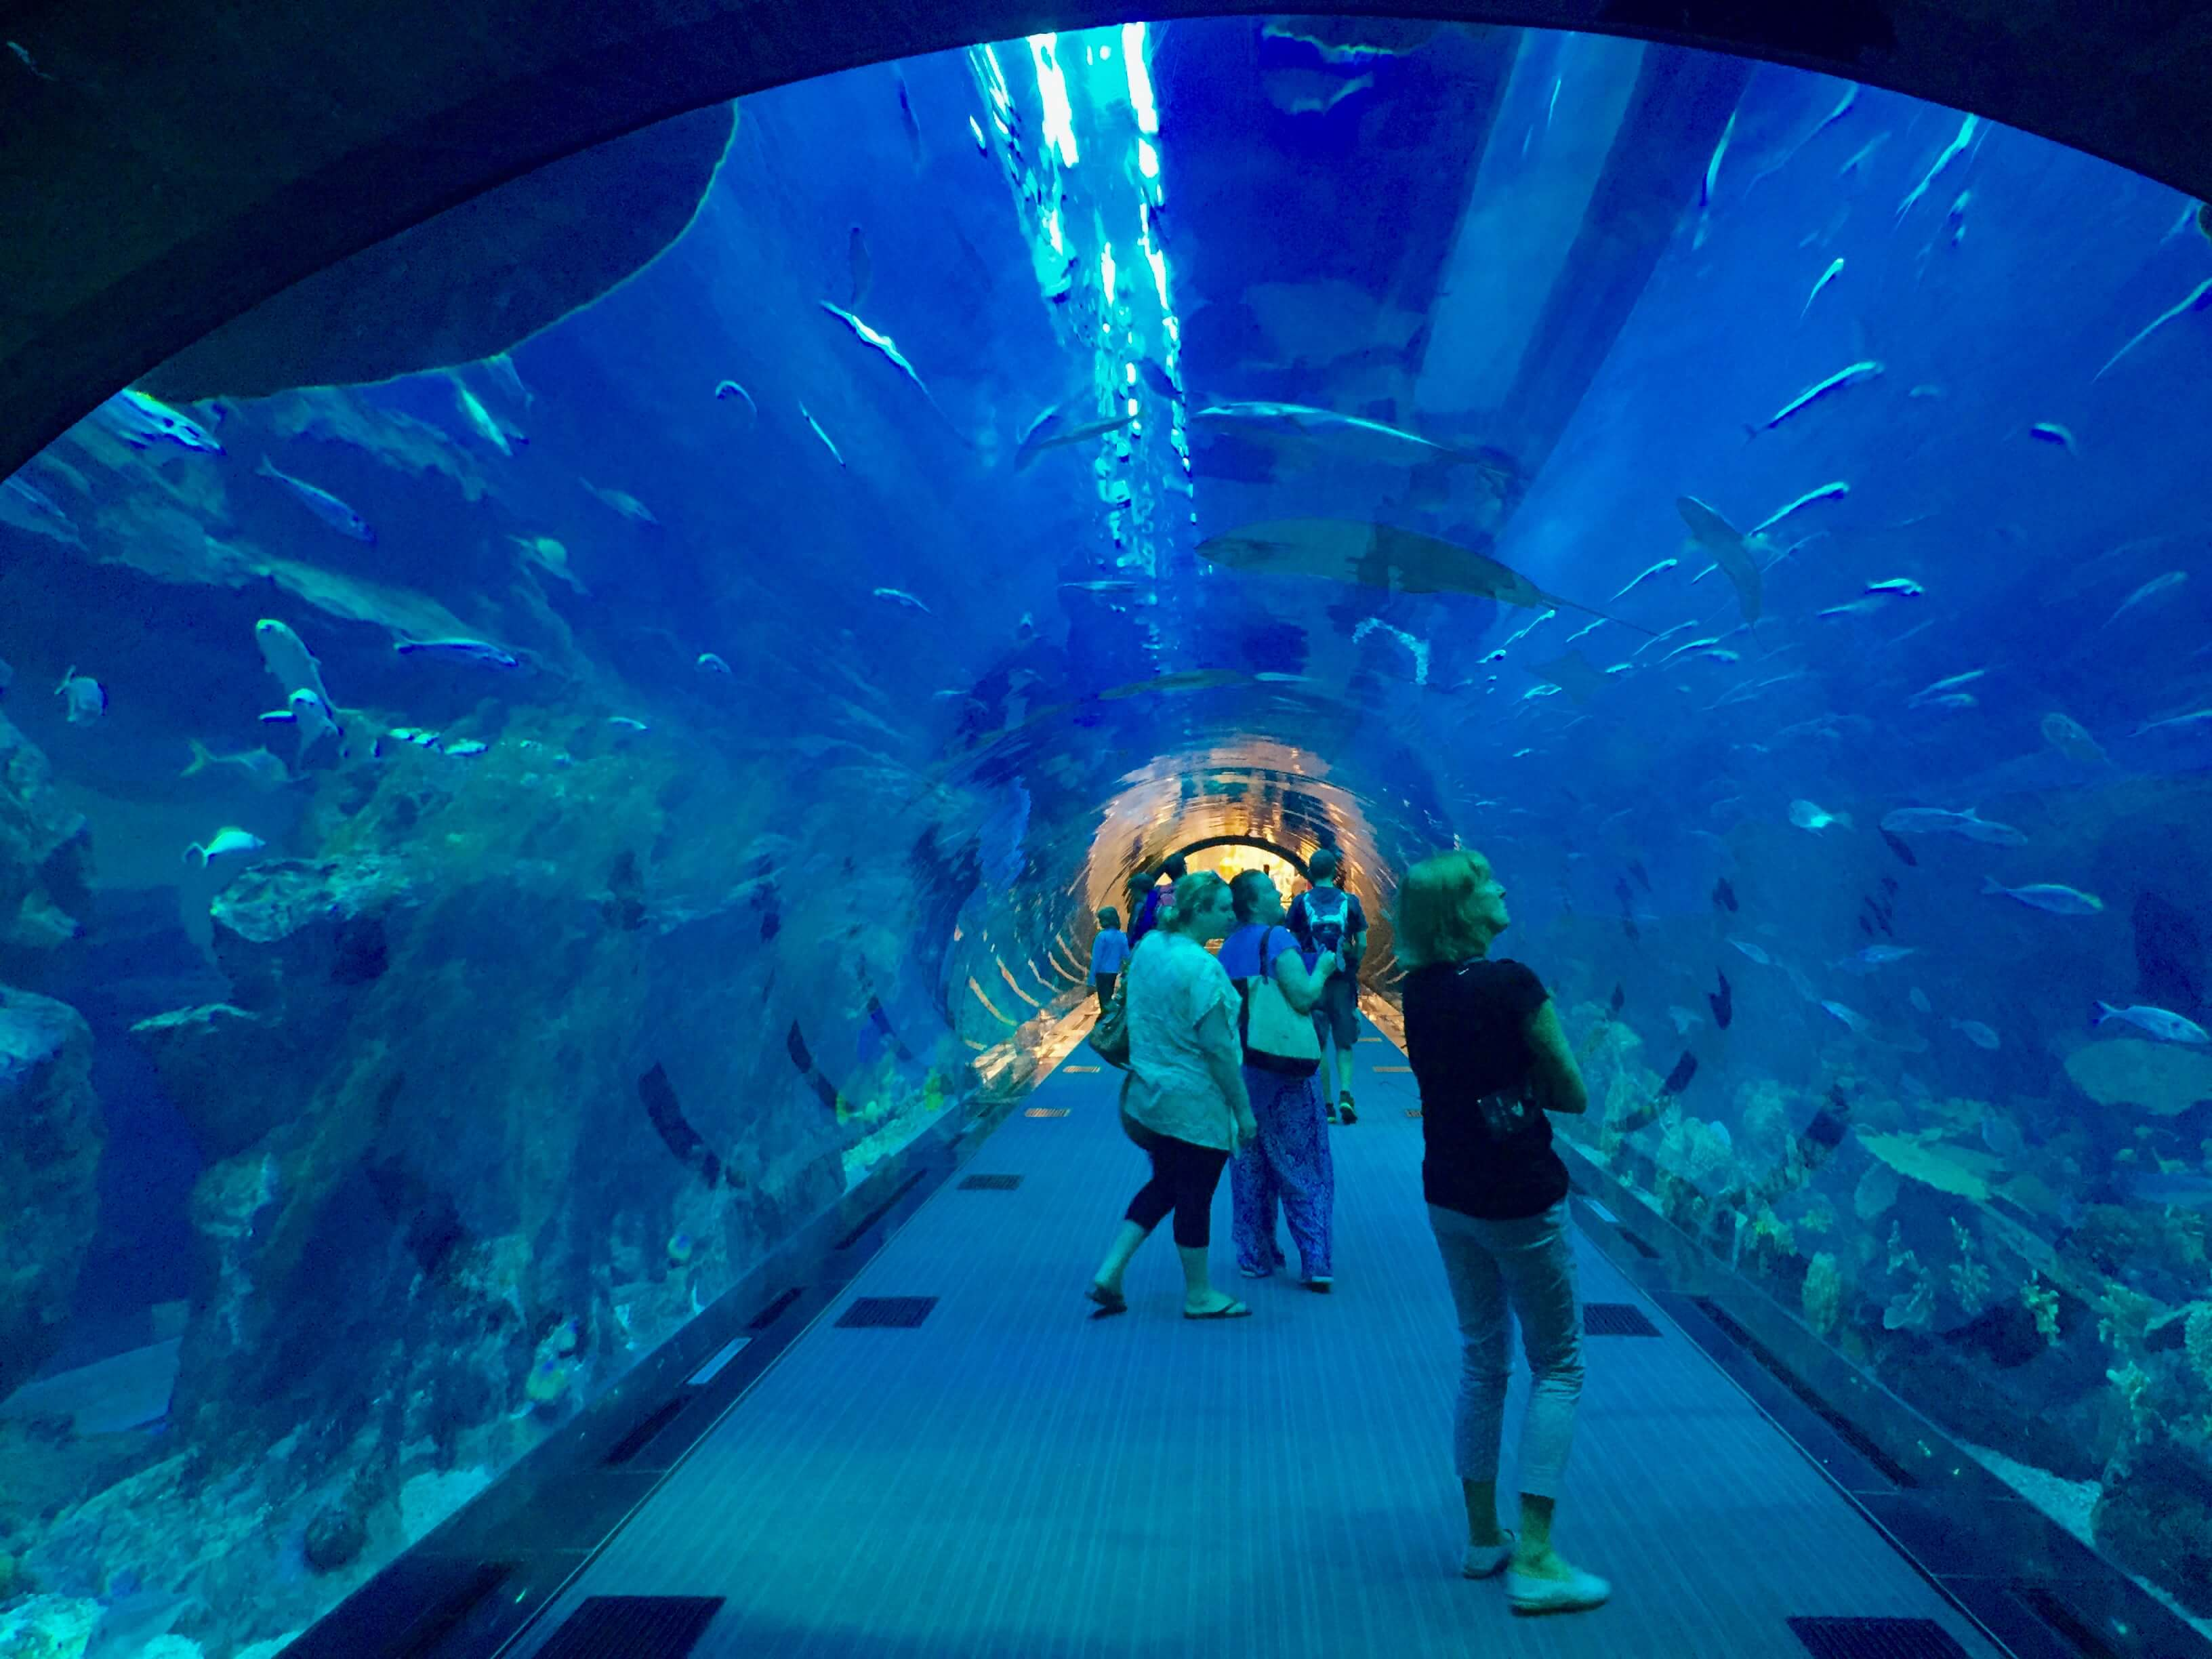 Walking through the aquarium inside dubai mall